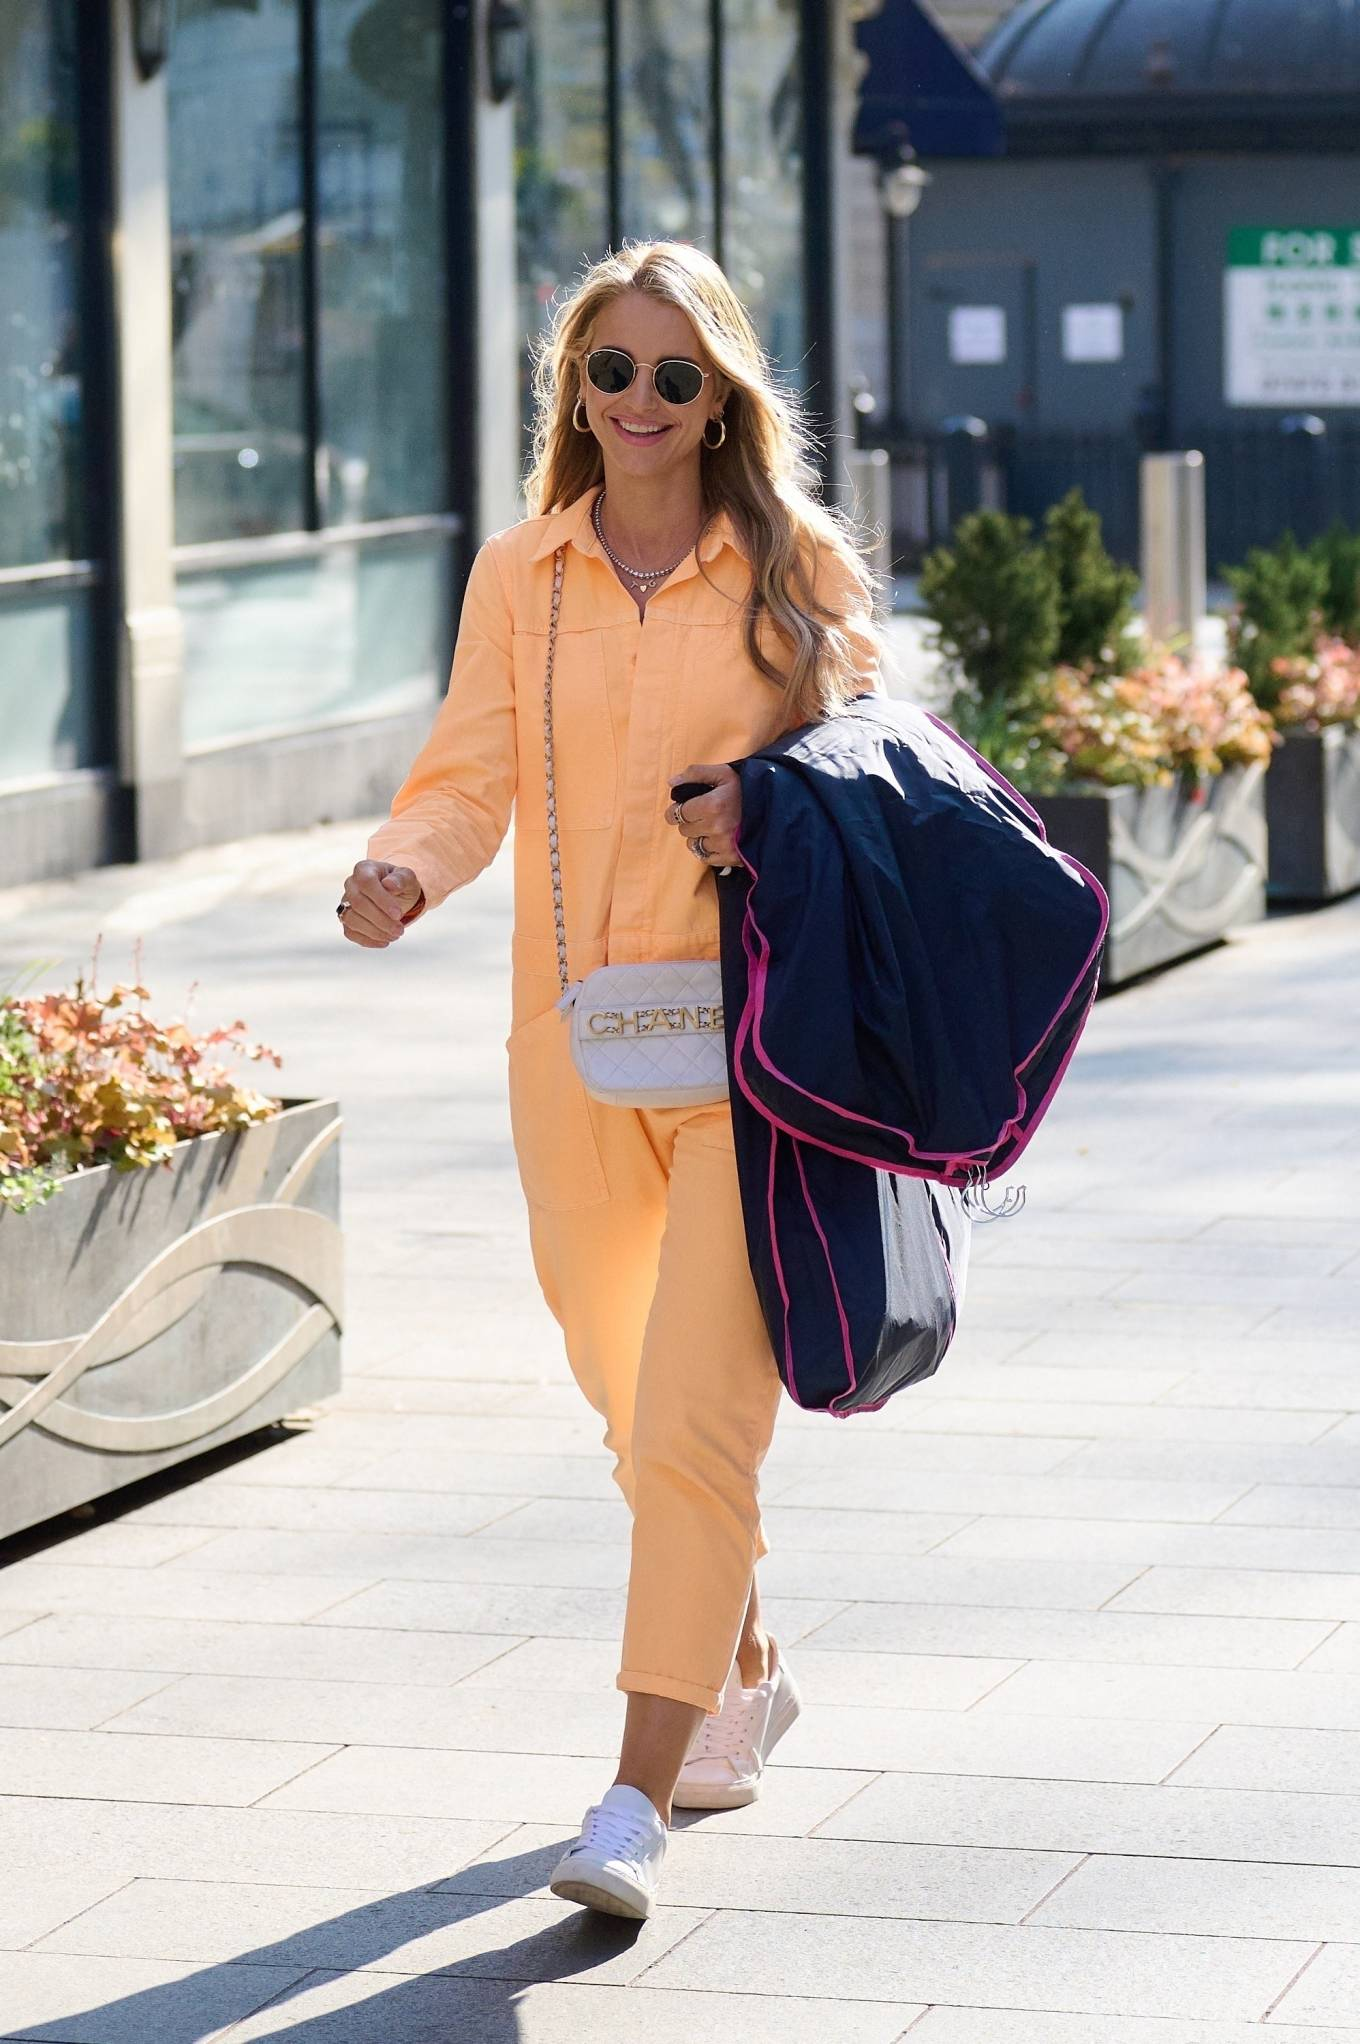 Vogue Williams 2021 : Vogue Williams – Pictured arriving at the Global studios in London-13